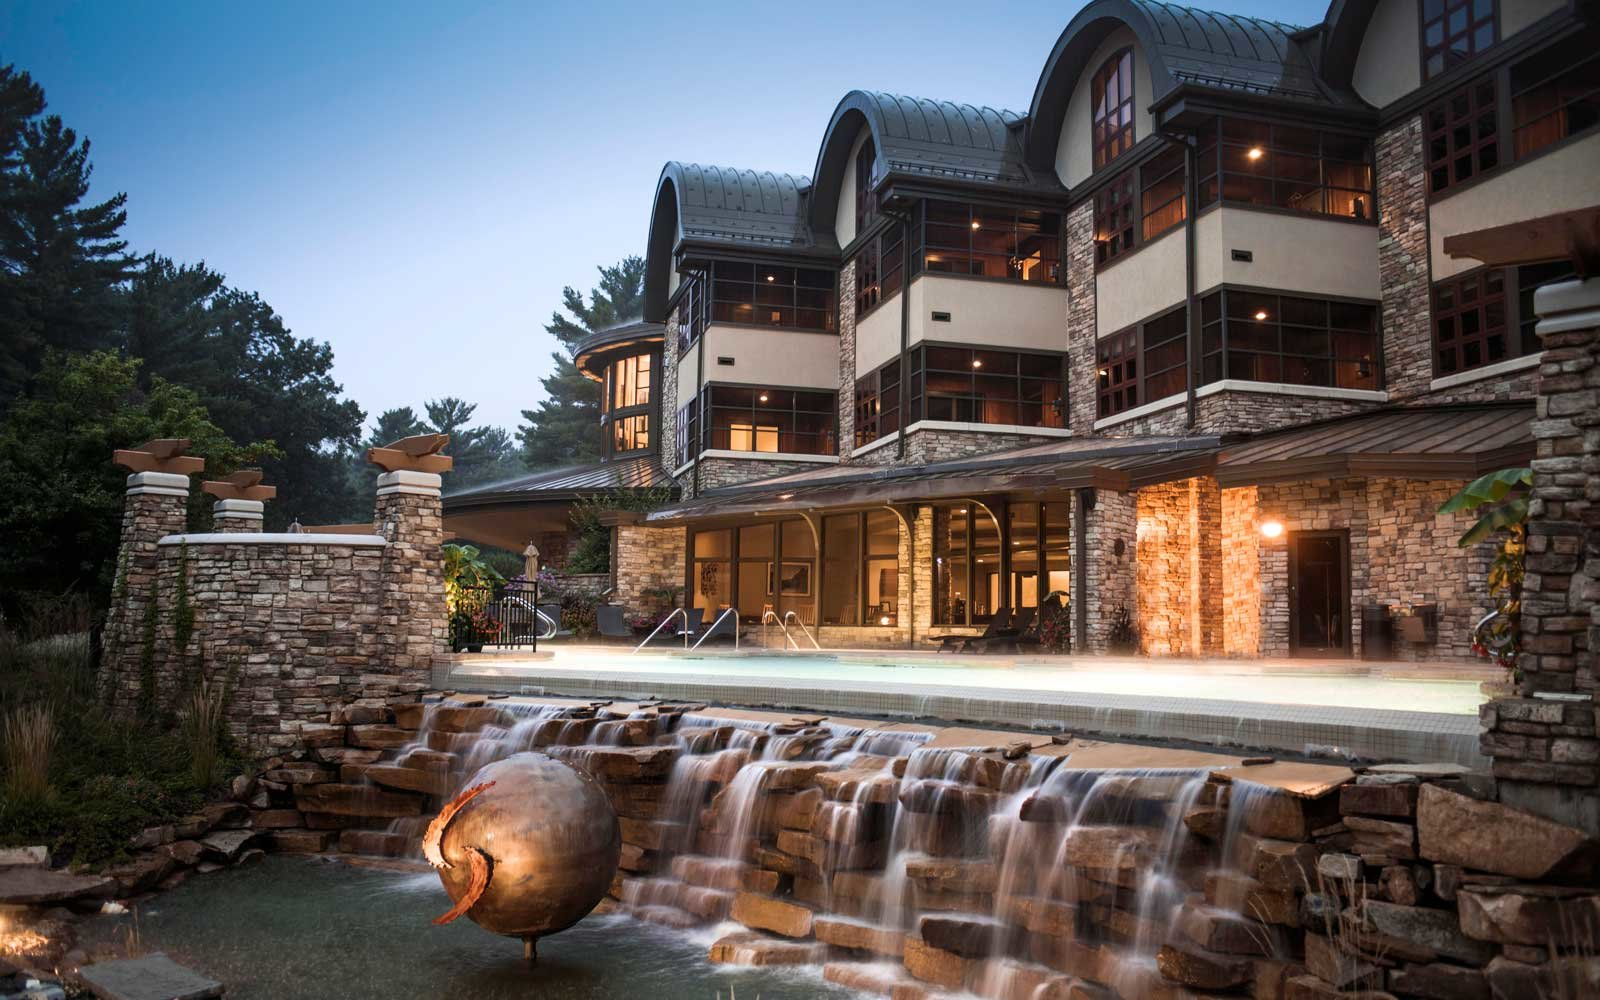 Wisconsin Dells Spa Wisconsin Dells Resort: The 2017 World's Best Resort Hotels In The Midwest